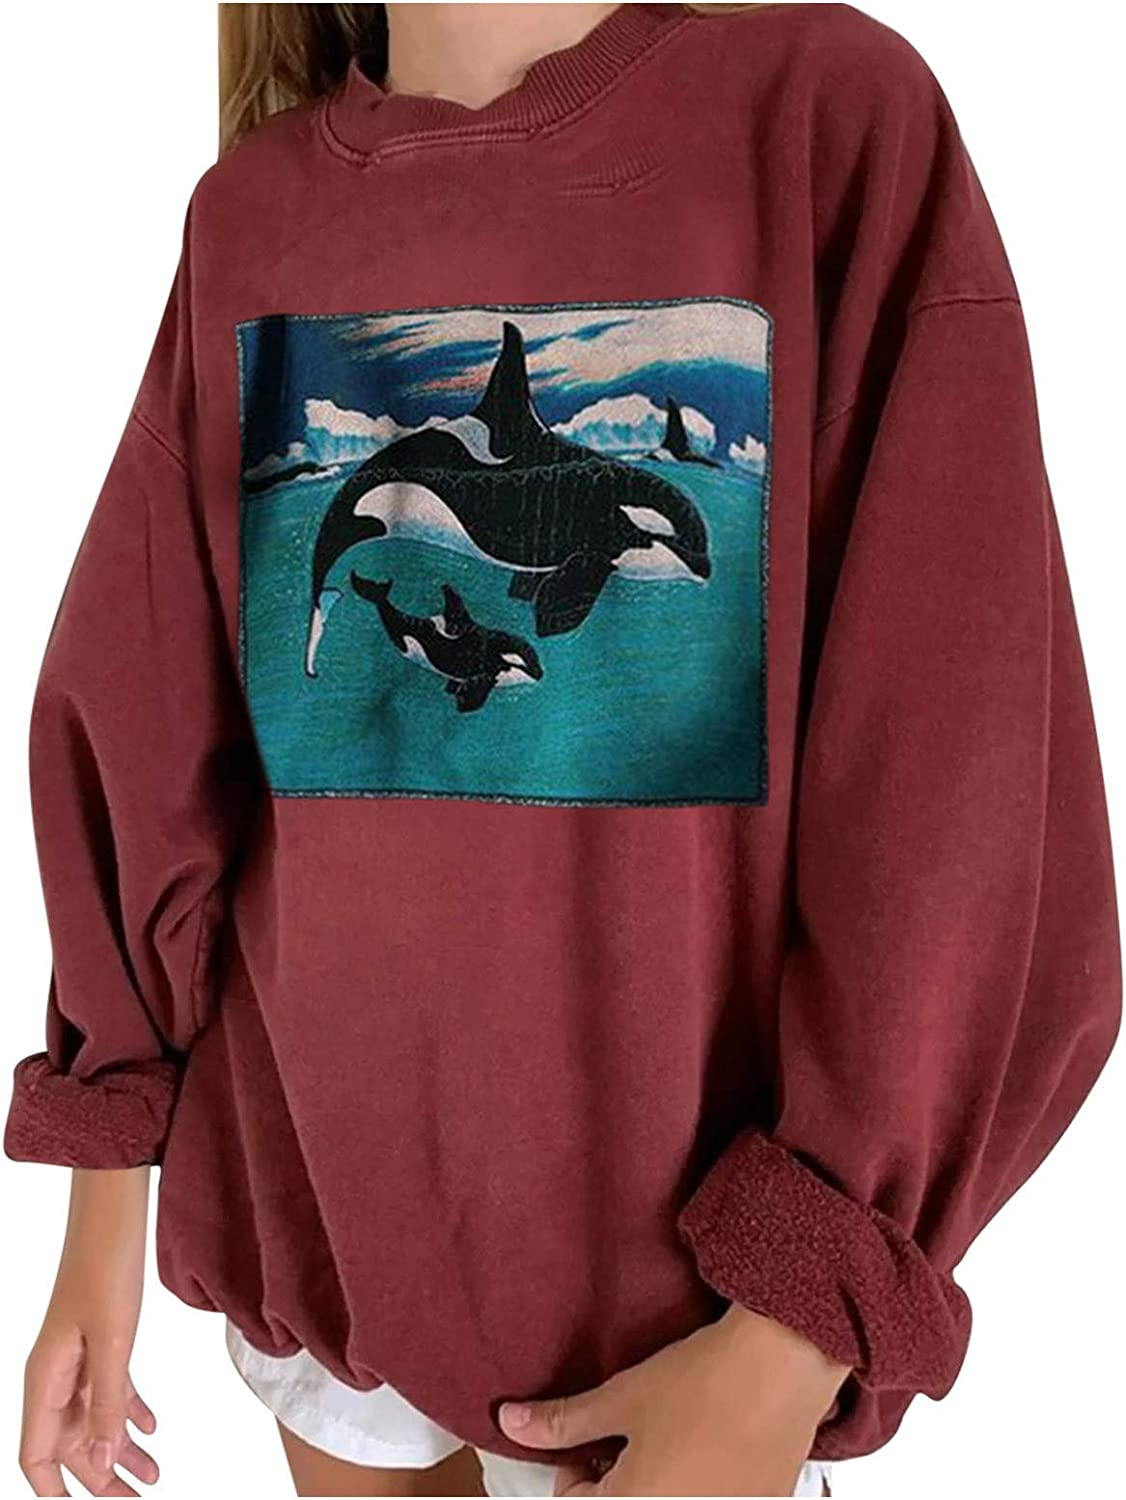 Women's Oversized Batwing Long Sleeve Sweatshirts Casual Loose Crewneck Tunic Shirts Vintage Graphic Pullover Tops